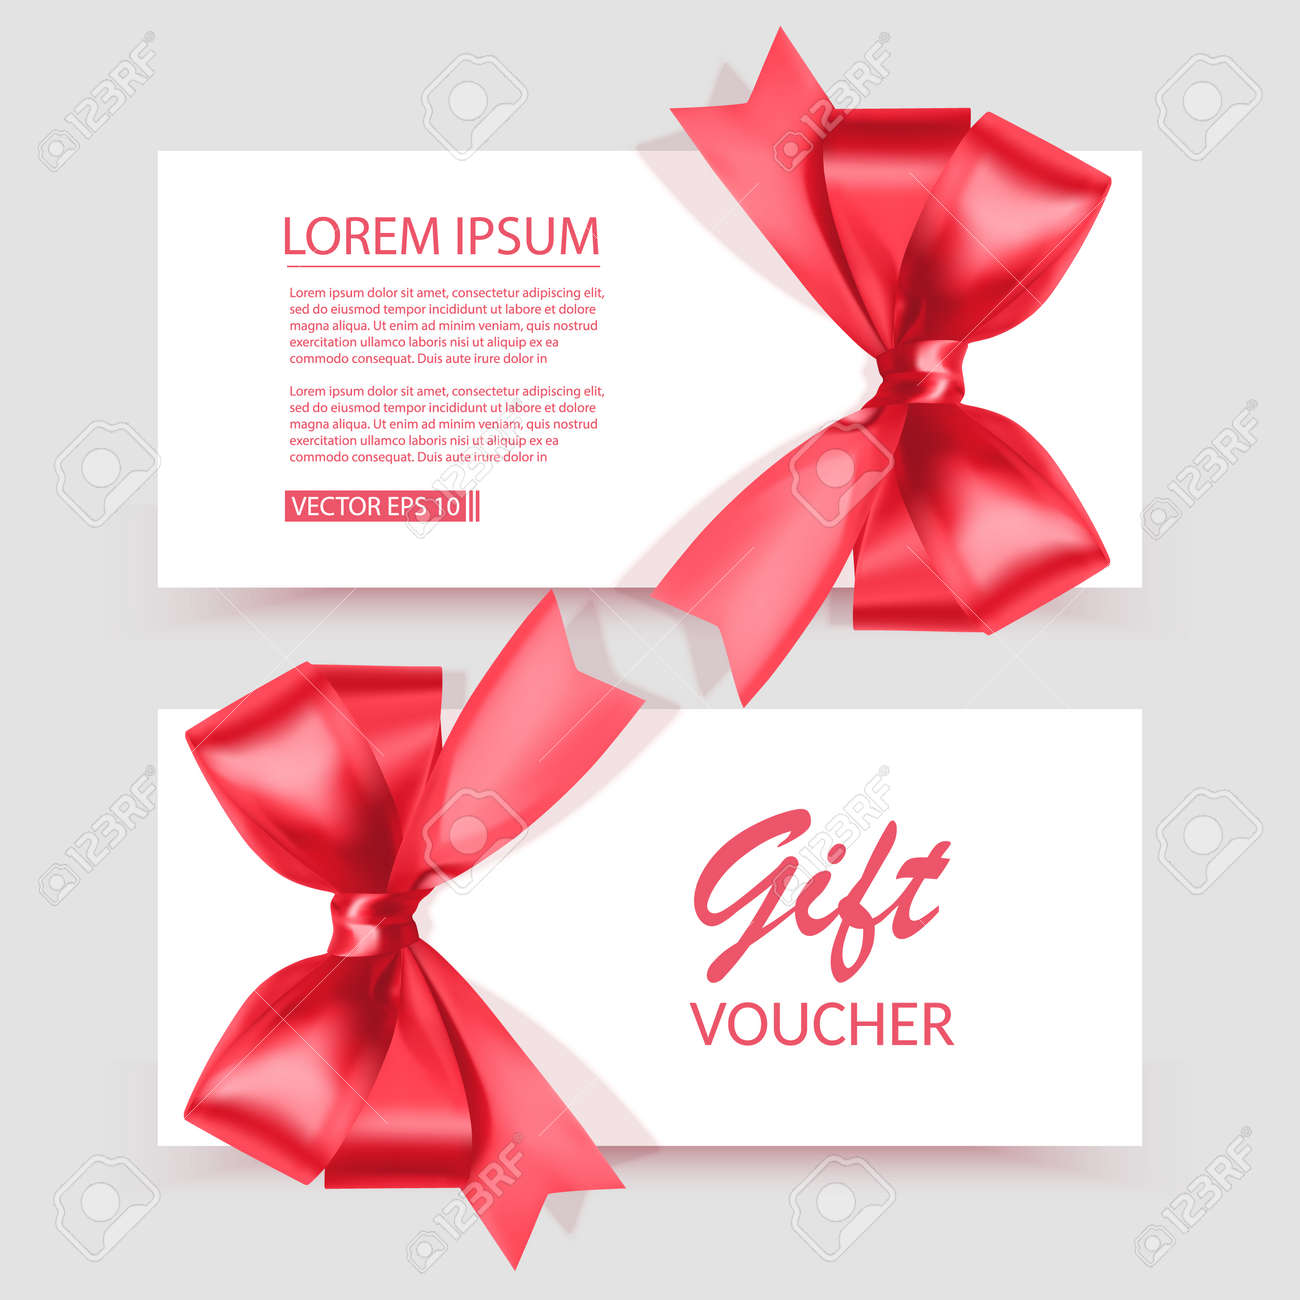 Voucher template with red bow, ribbons. Design usable for gift coupon, voucher, invitation, certificate, etc. Vector illustration - 171970916